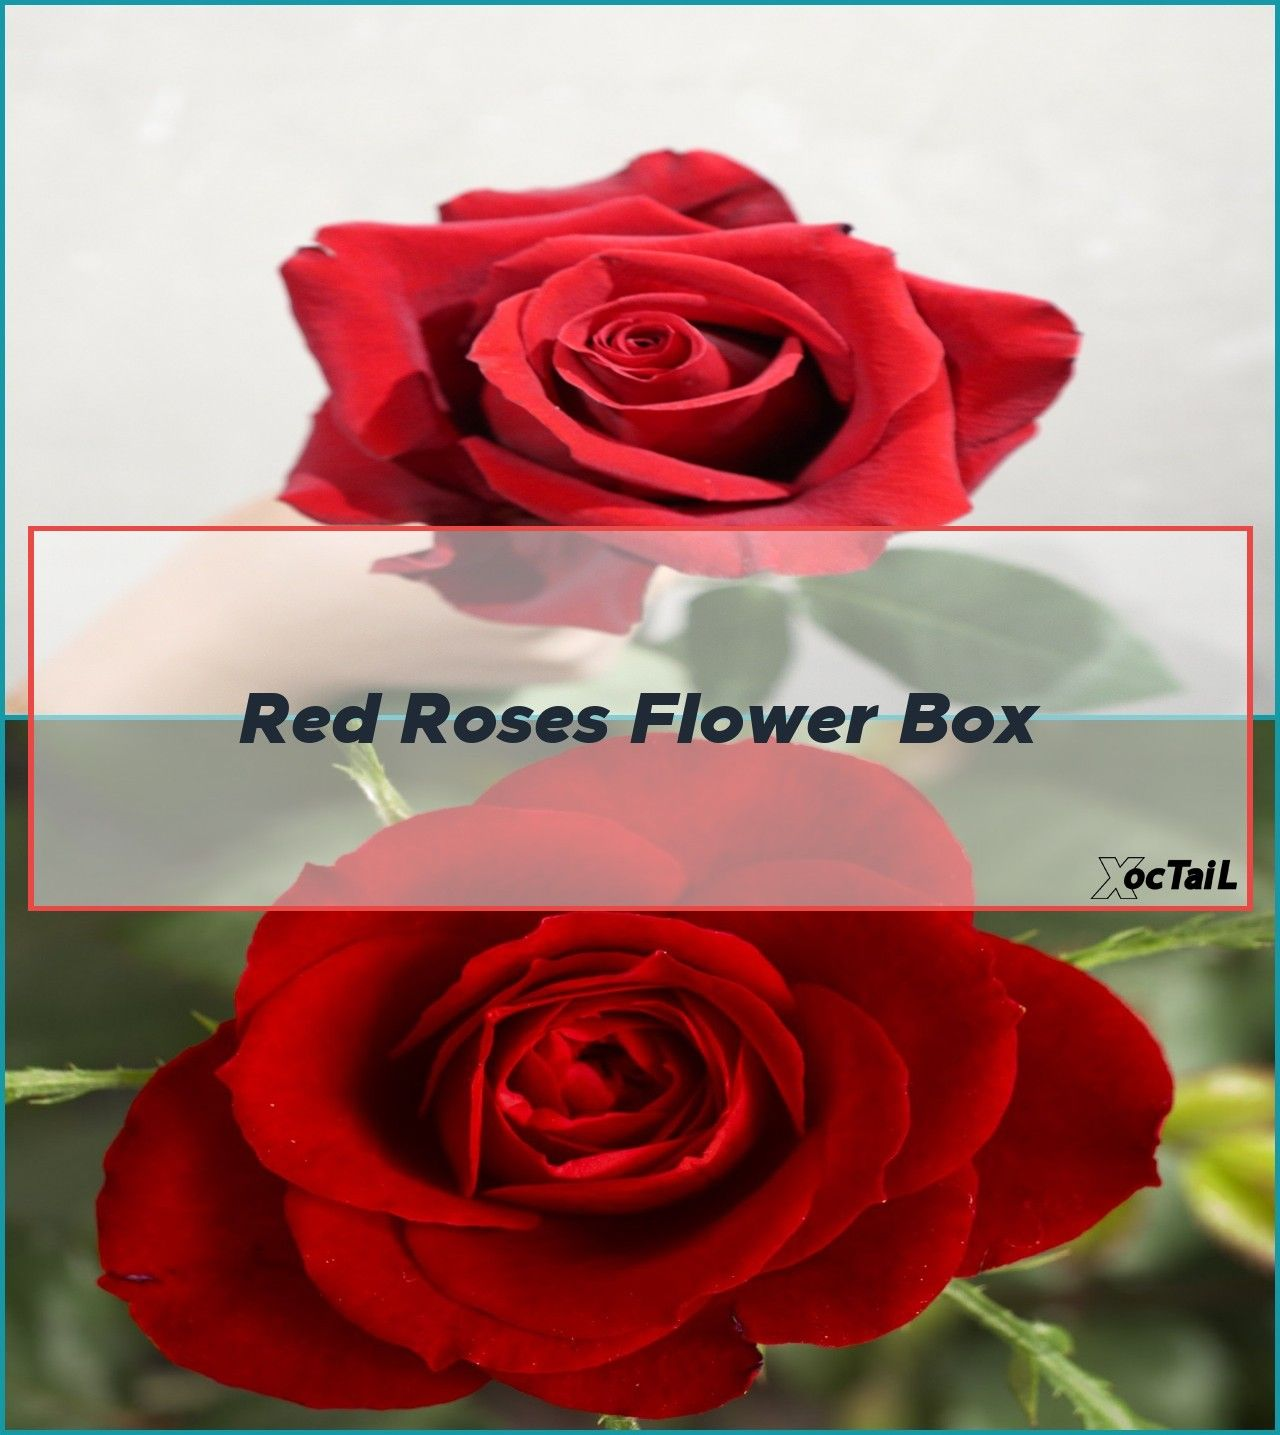 Red Roses Flower Box Rose Roses Flower York Musings Inkspired Month Today In 2020